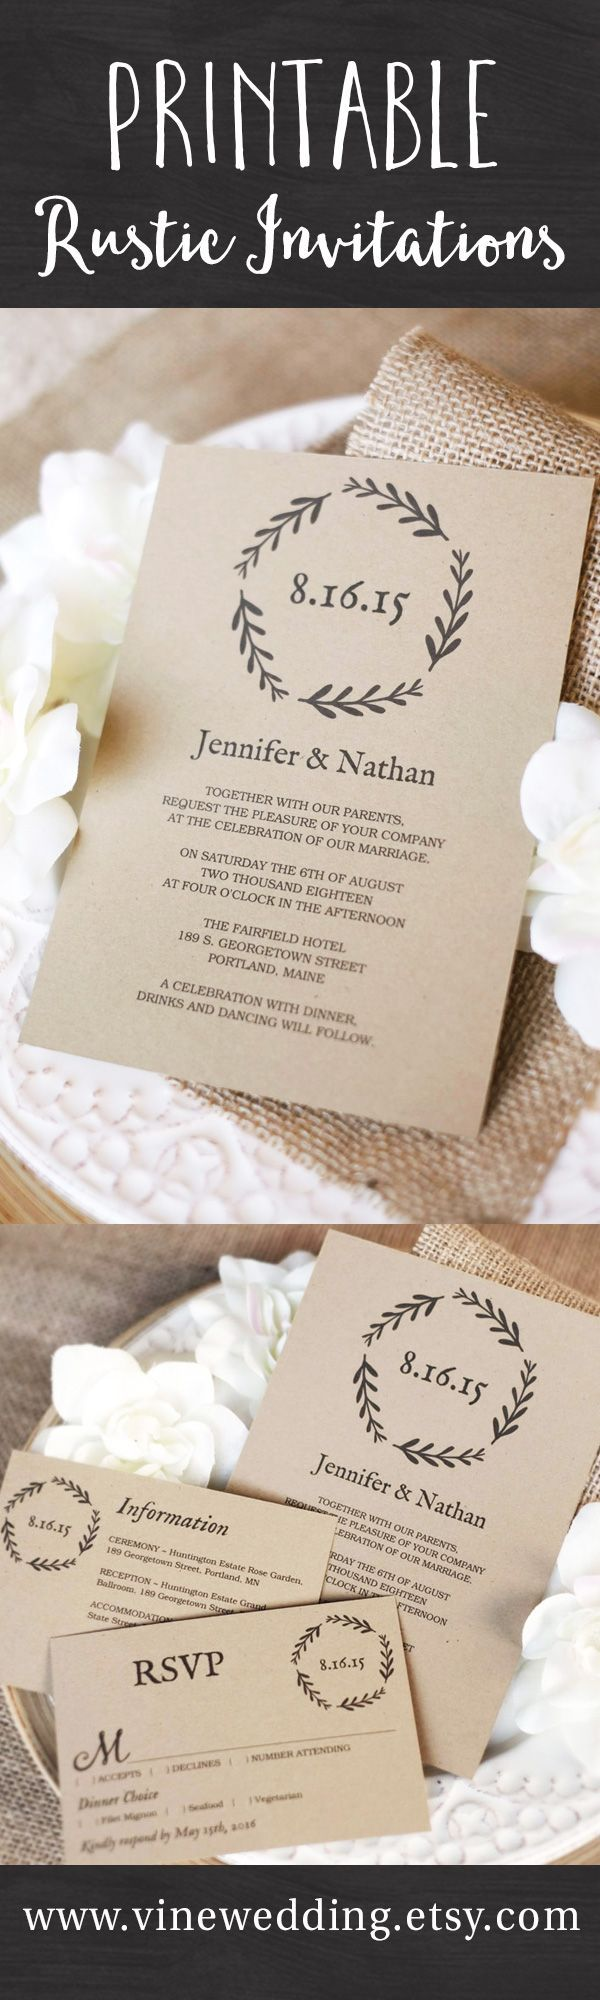 diy photo wedding invitations templates%0A Beautiful rustic wedding invitations  Editable instant download templates  you can print as many as you